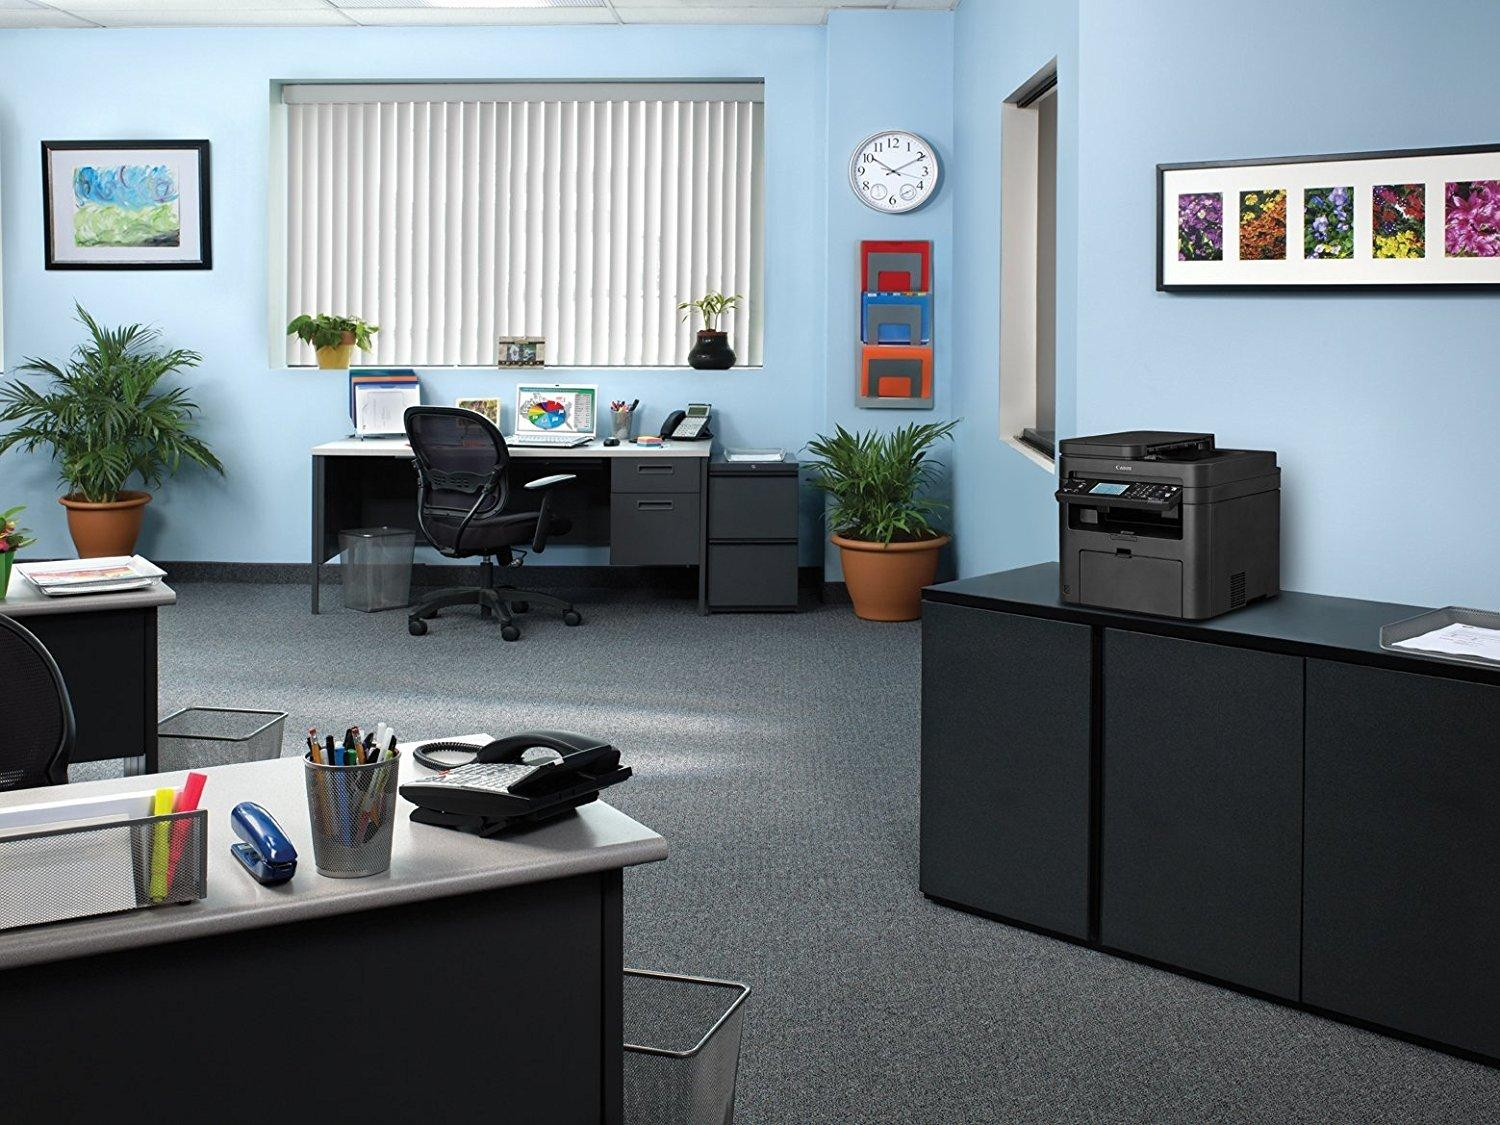 Furniture: Awesome Costco Office Furniture With Desk And Cabinets Intended For Costco Wall Art (View 6 of 20)